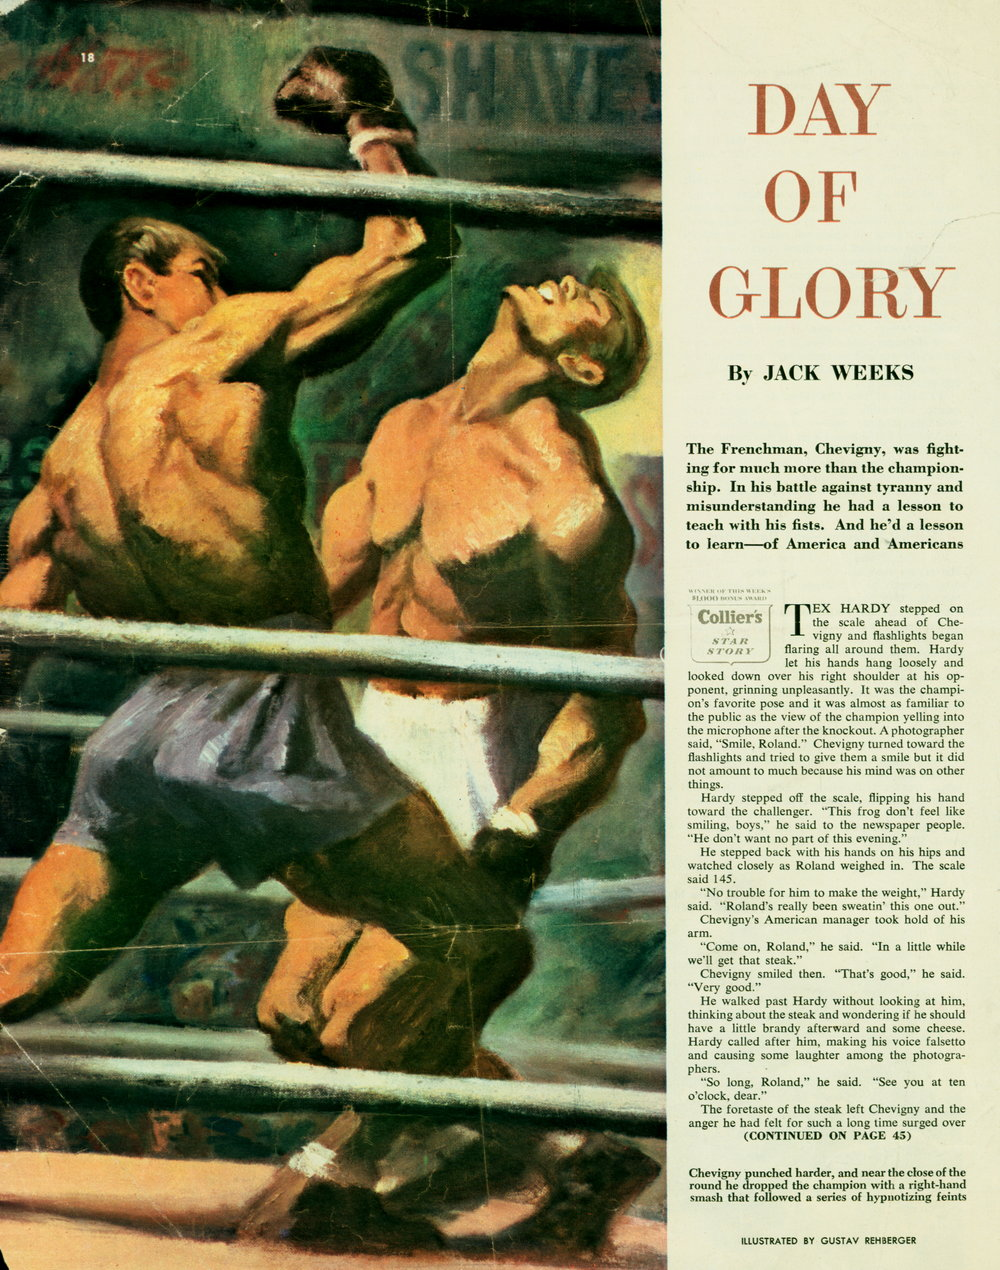 March 19, 1949 - Day of Glory